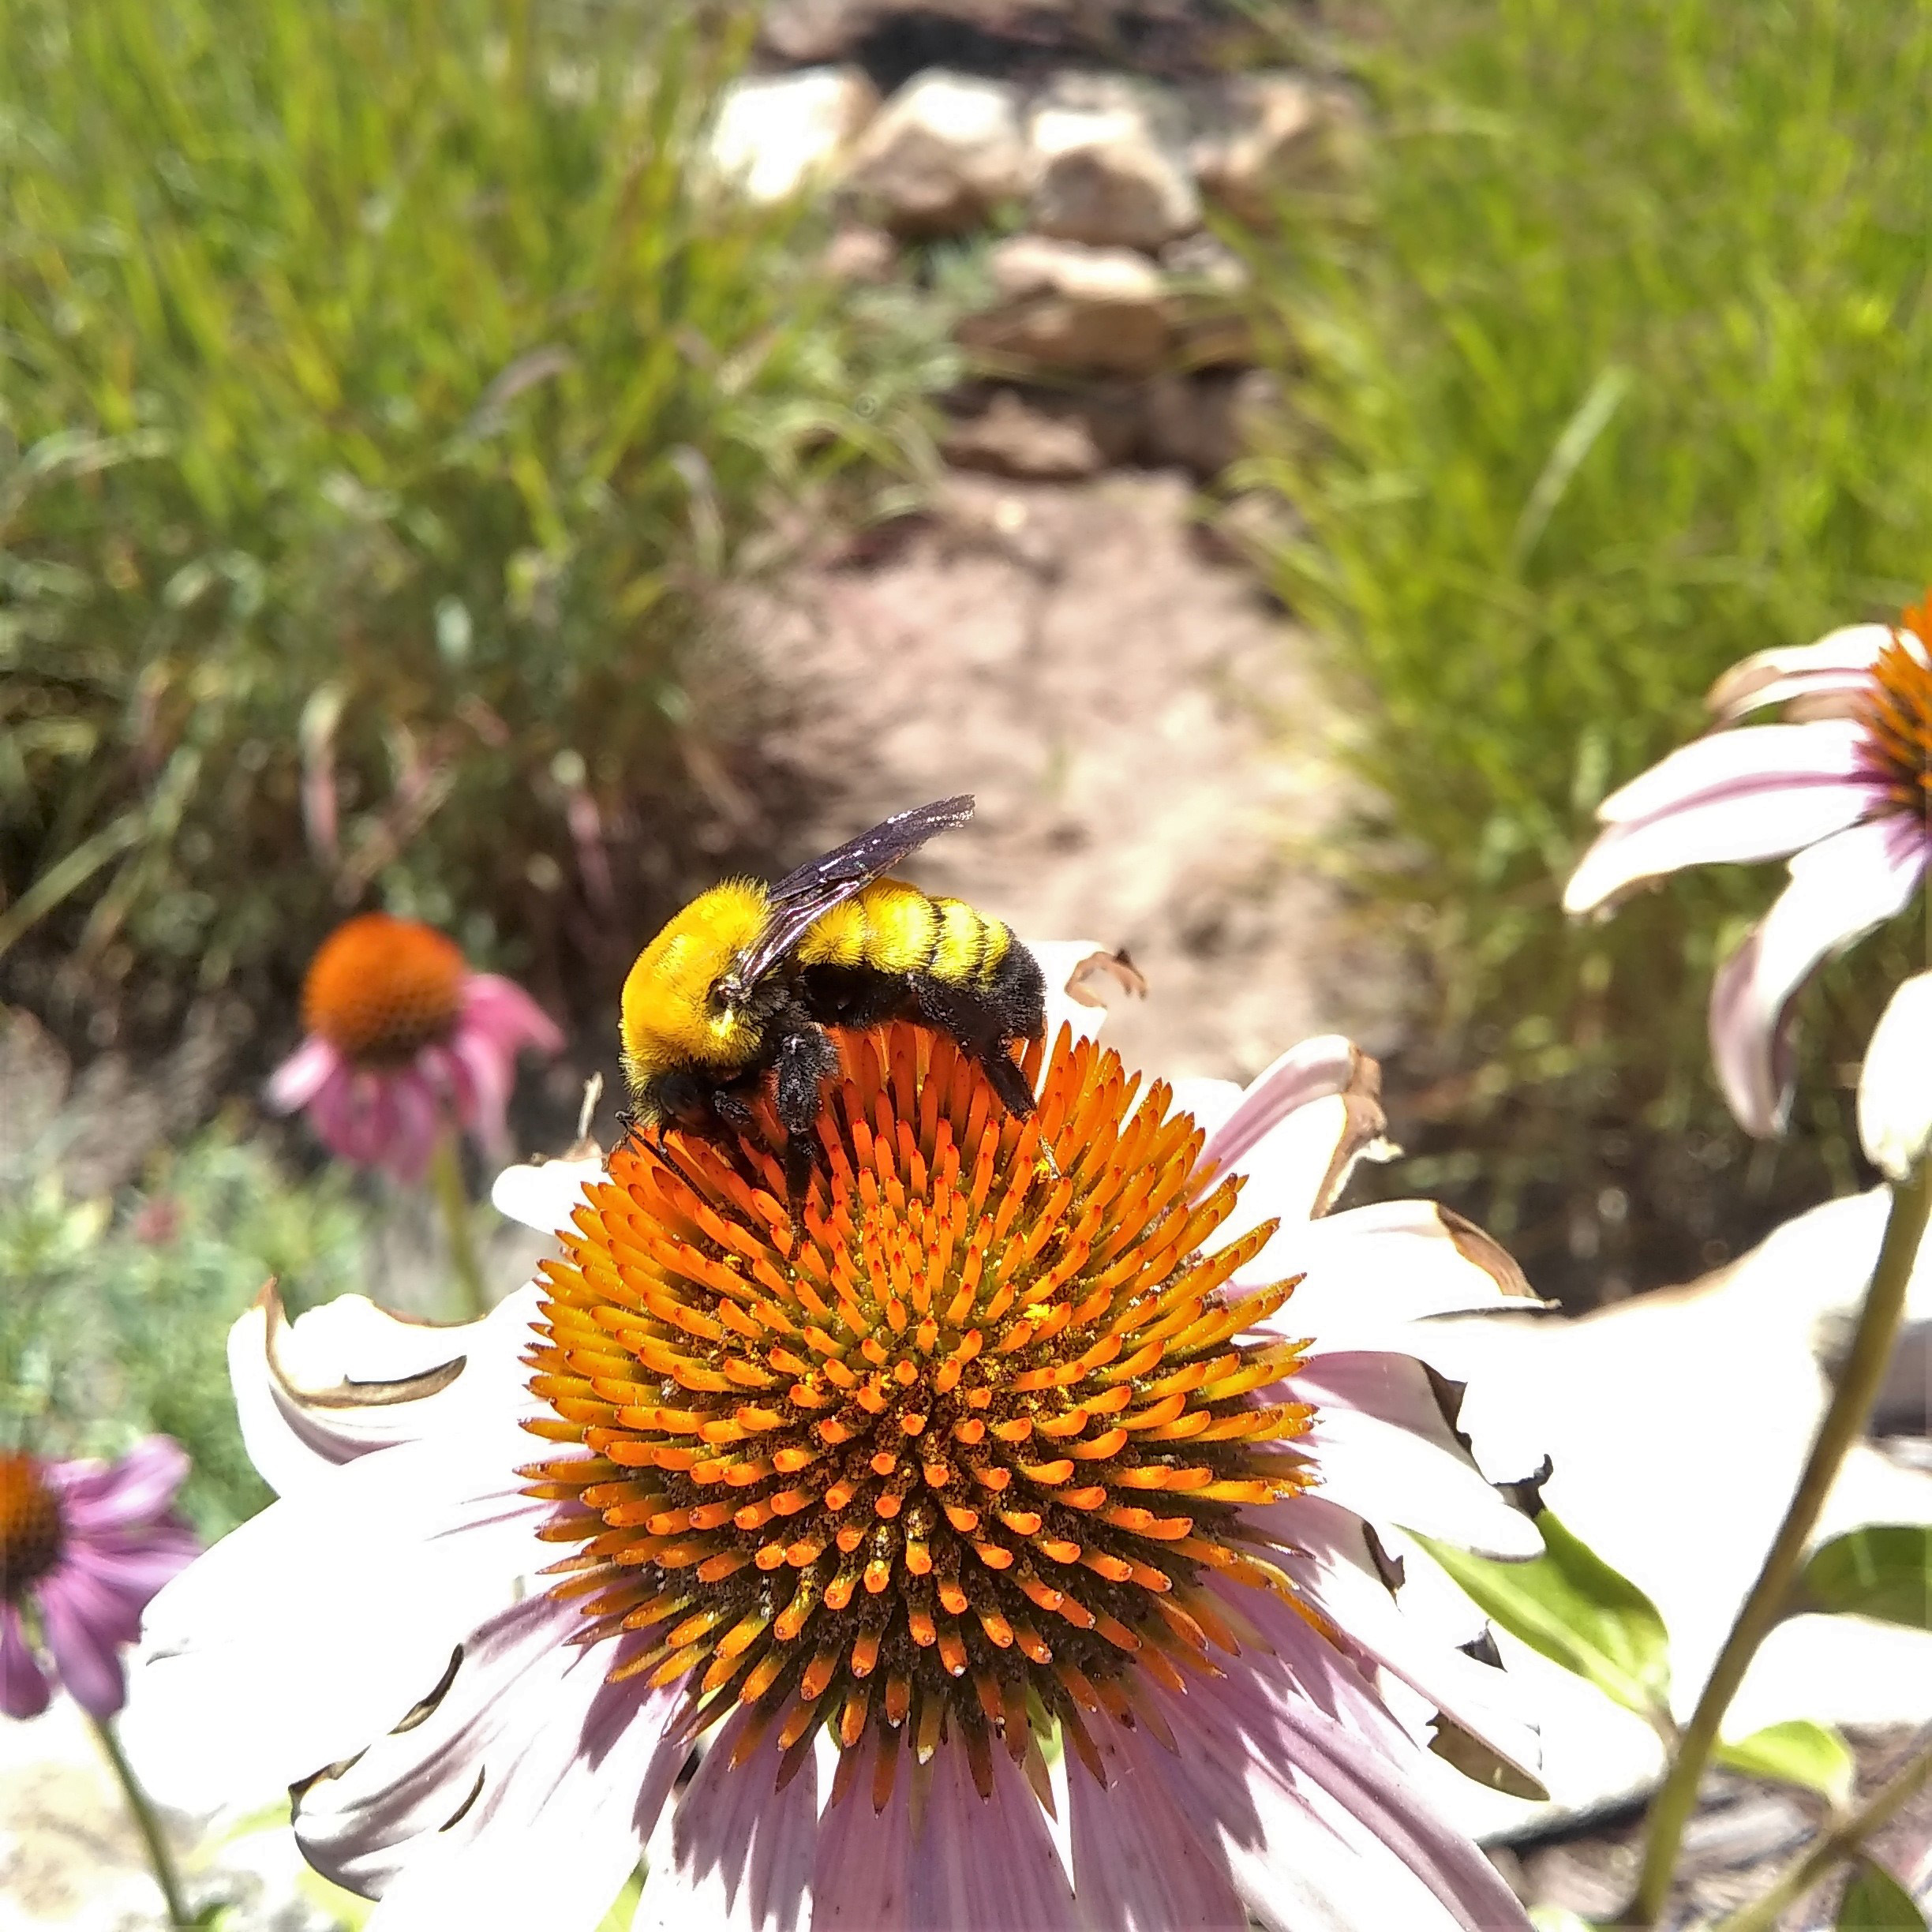 A large hairy yellow-and-black bumble bee drinks nectar from a purple coneflower.